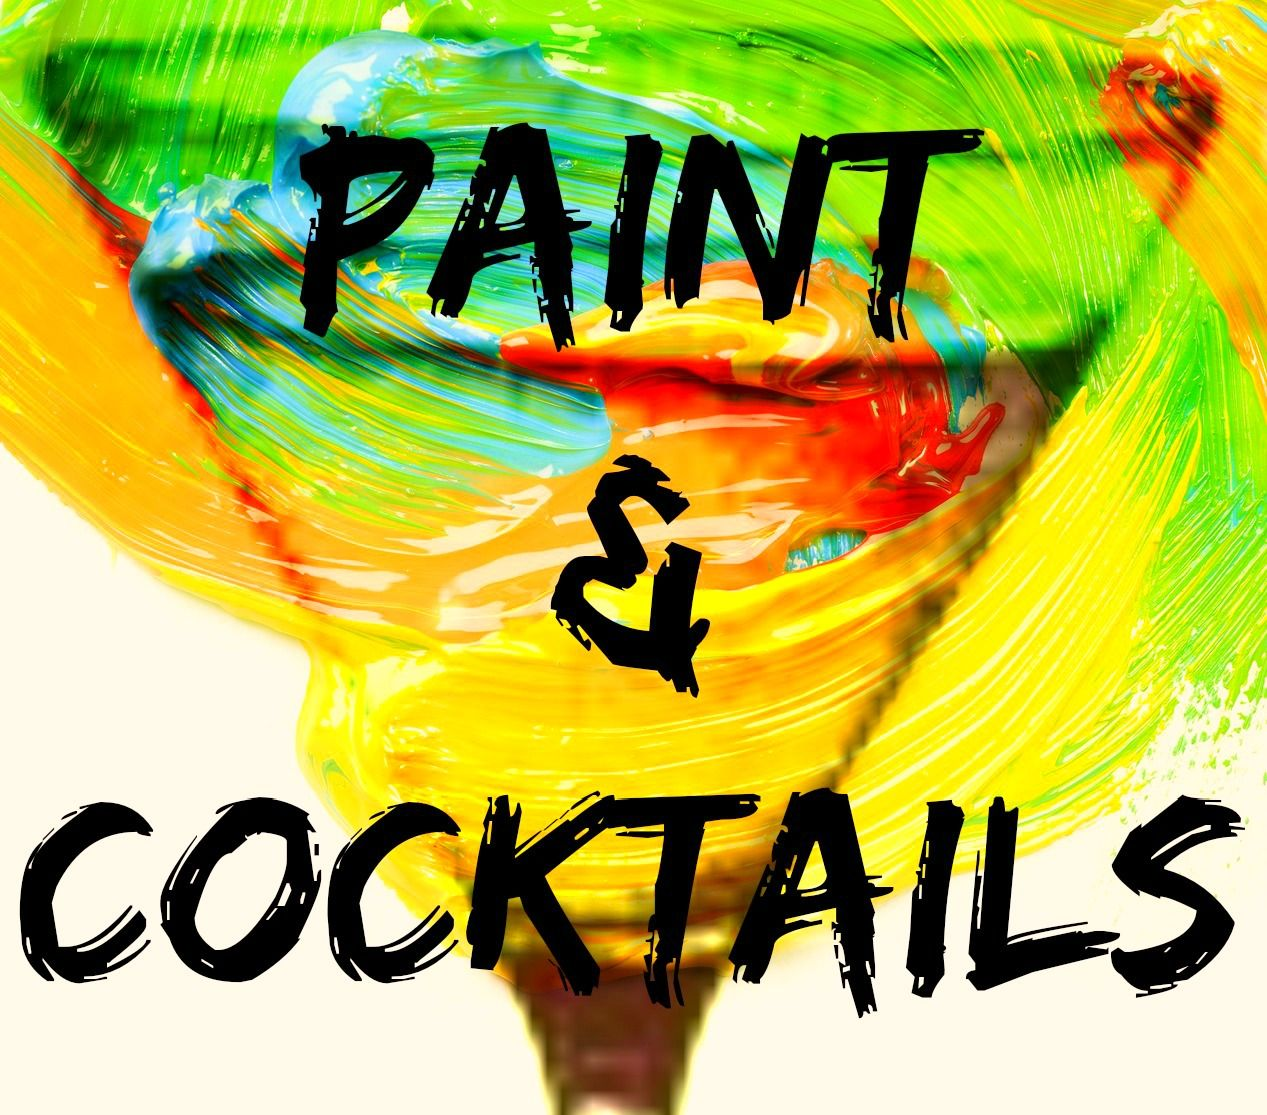 Paint & Cocktails - Paint Night for Grown Ups! Let's Mess Around. Great for Date Night or Girl's Night Out. Located in the GTA